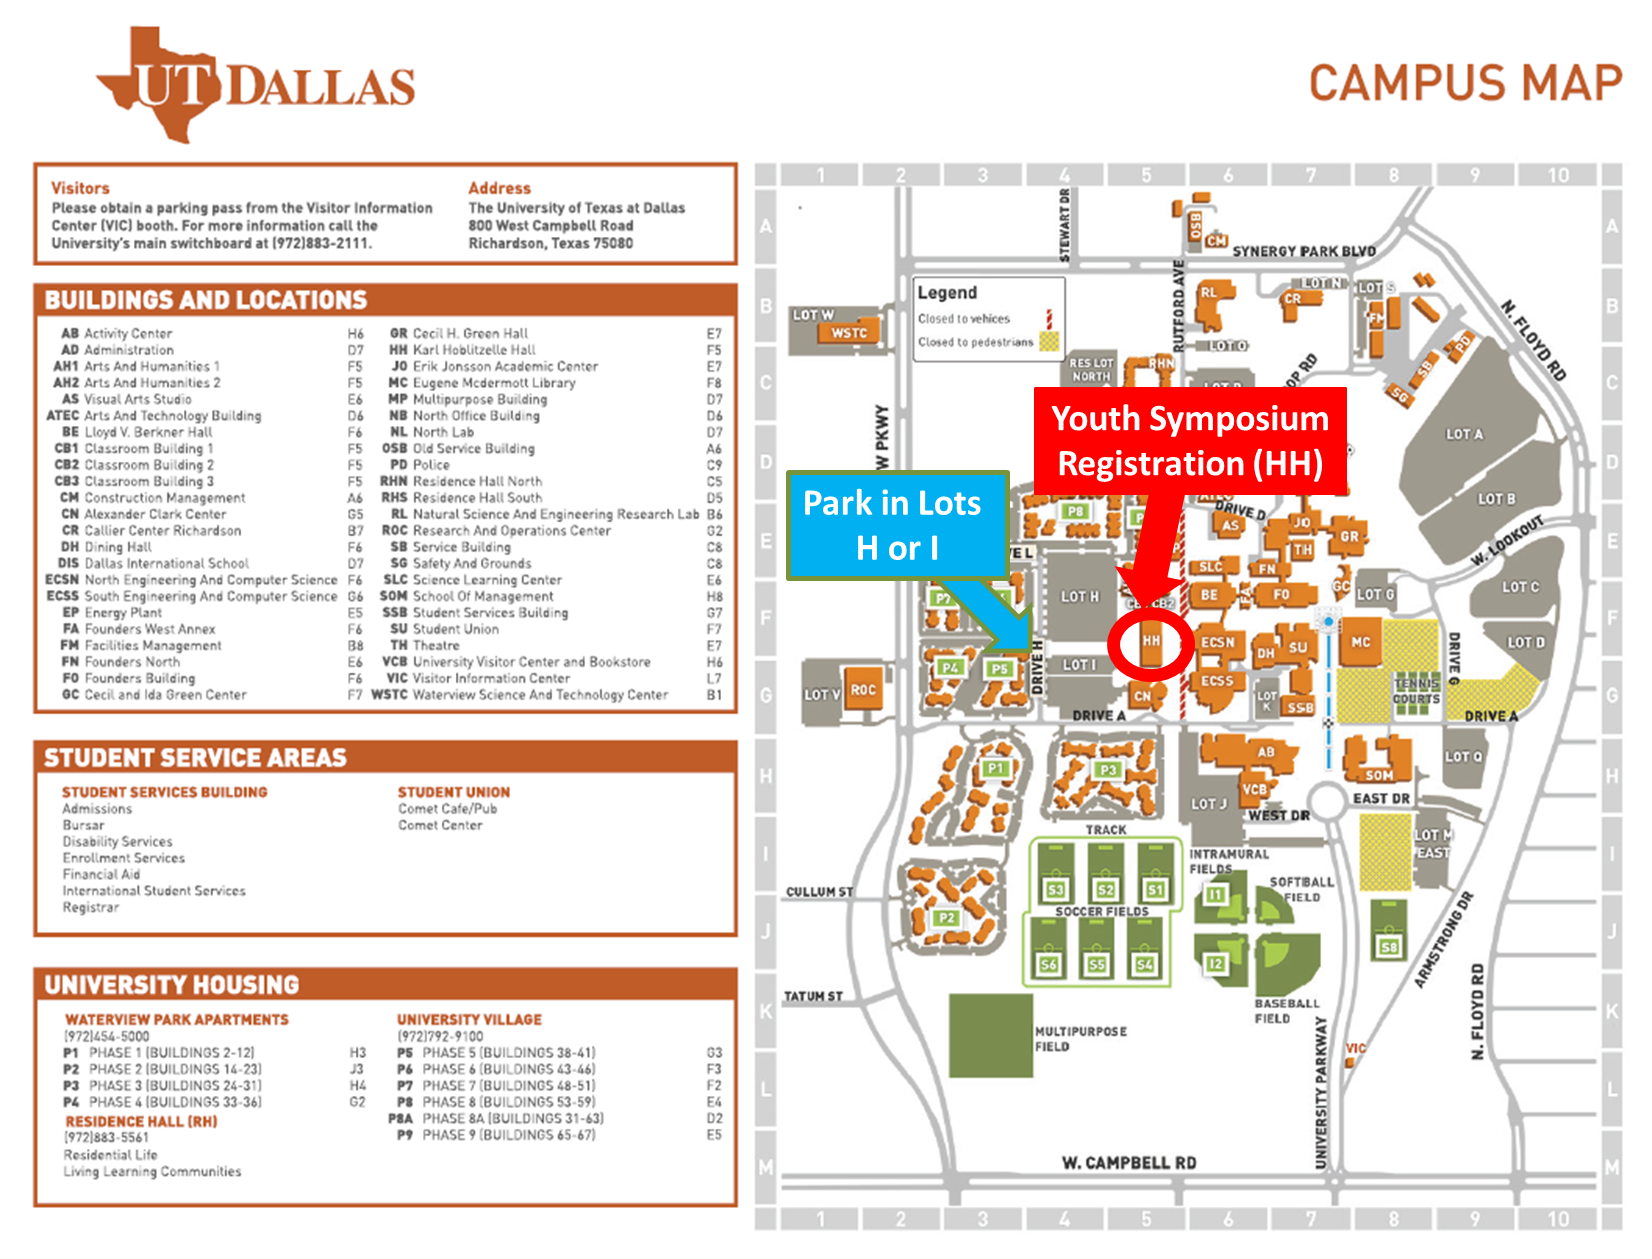 Aacc Main Campus Map.Index Of Dfwaacc Wp Content Uploads 2011 10